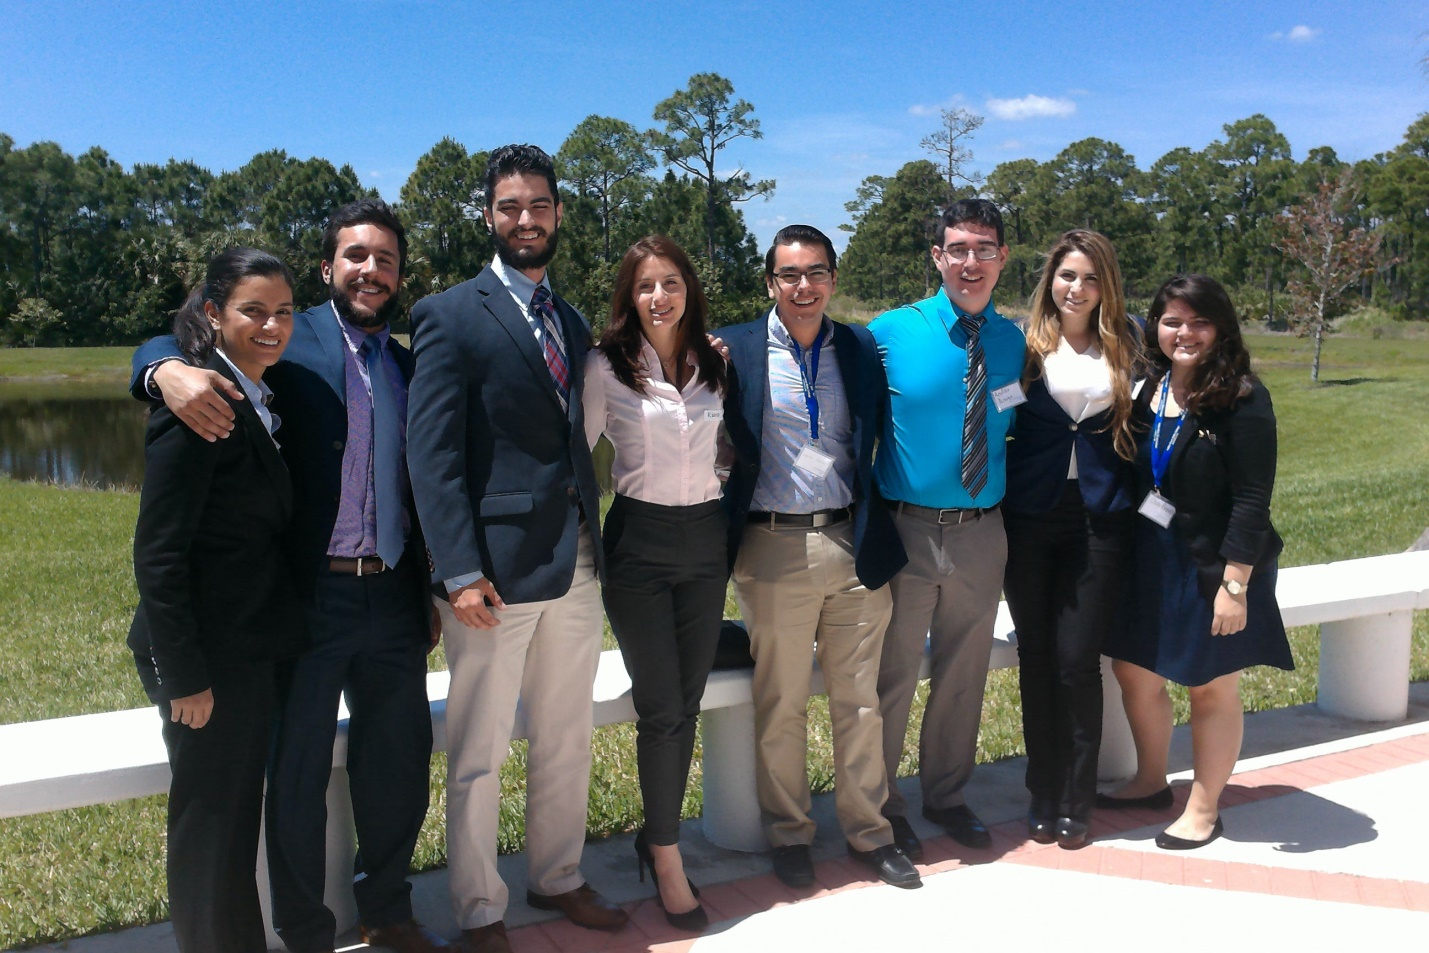 FIU STEM Students Present Their Research at Life Science South Florida Symposia, Indian River State College